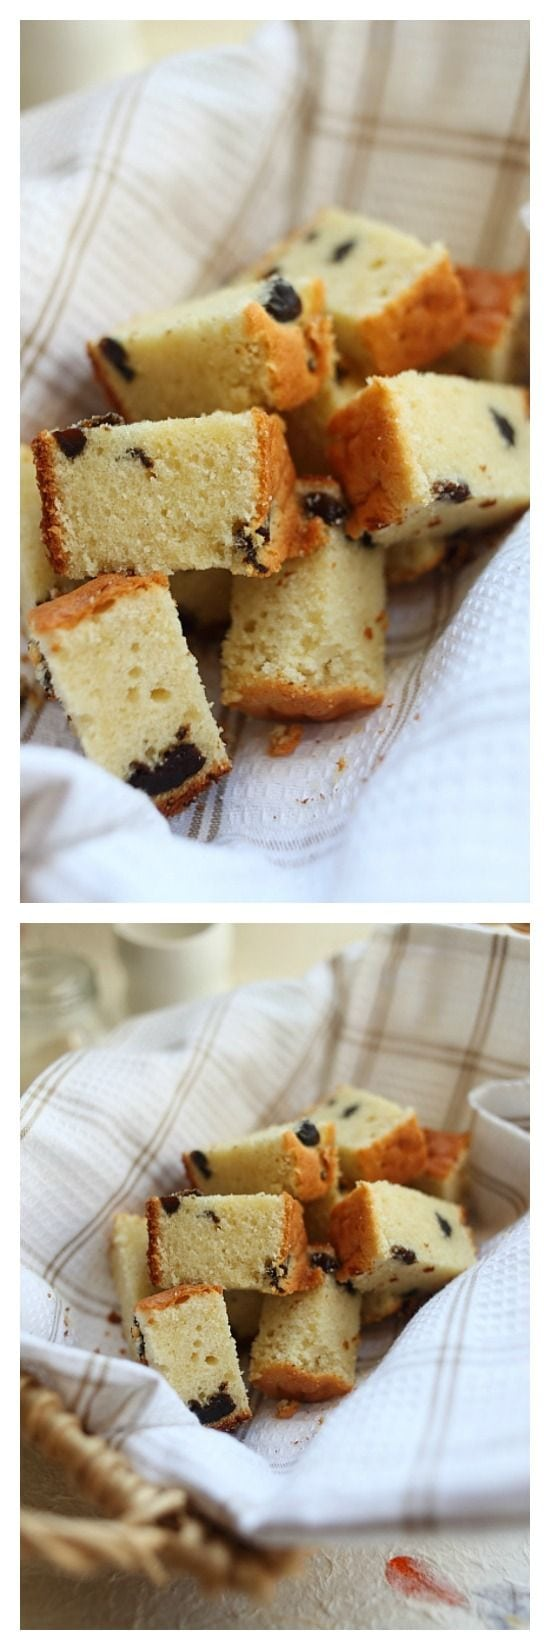 Brandy Butter Cake with Prunes – Rich, moist, sweet, and super buttery butter cake with splashes of brandy plus dried prunes. You just have to make this. | rasamalaysia.com